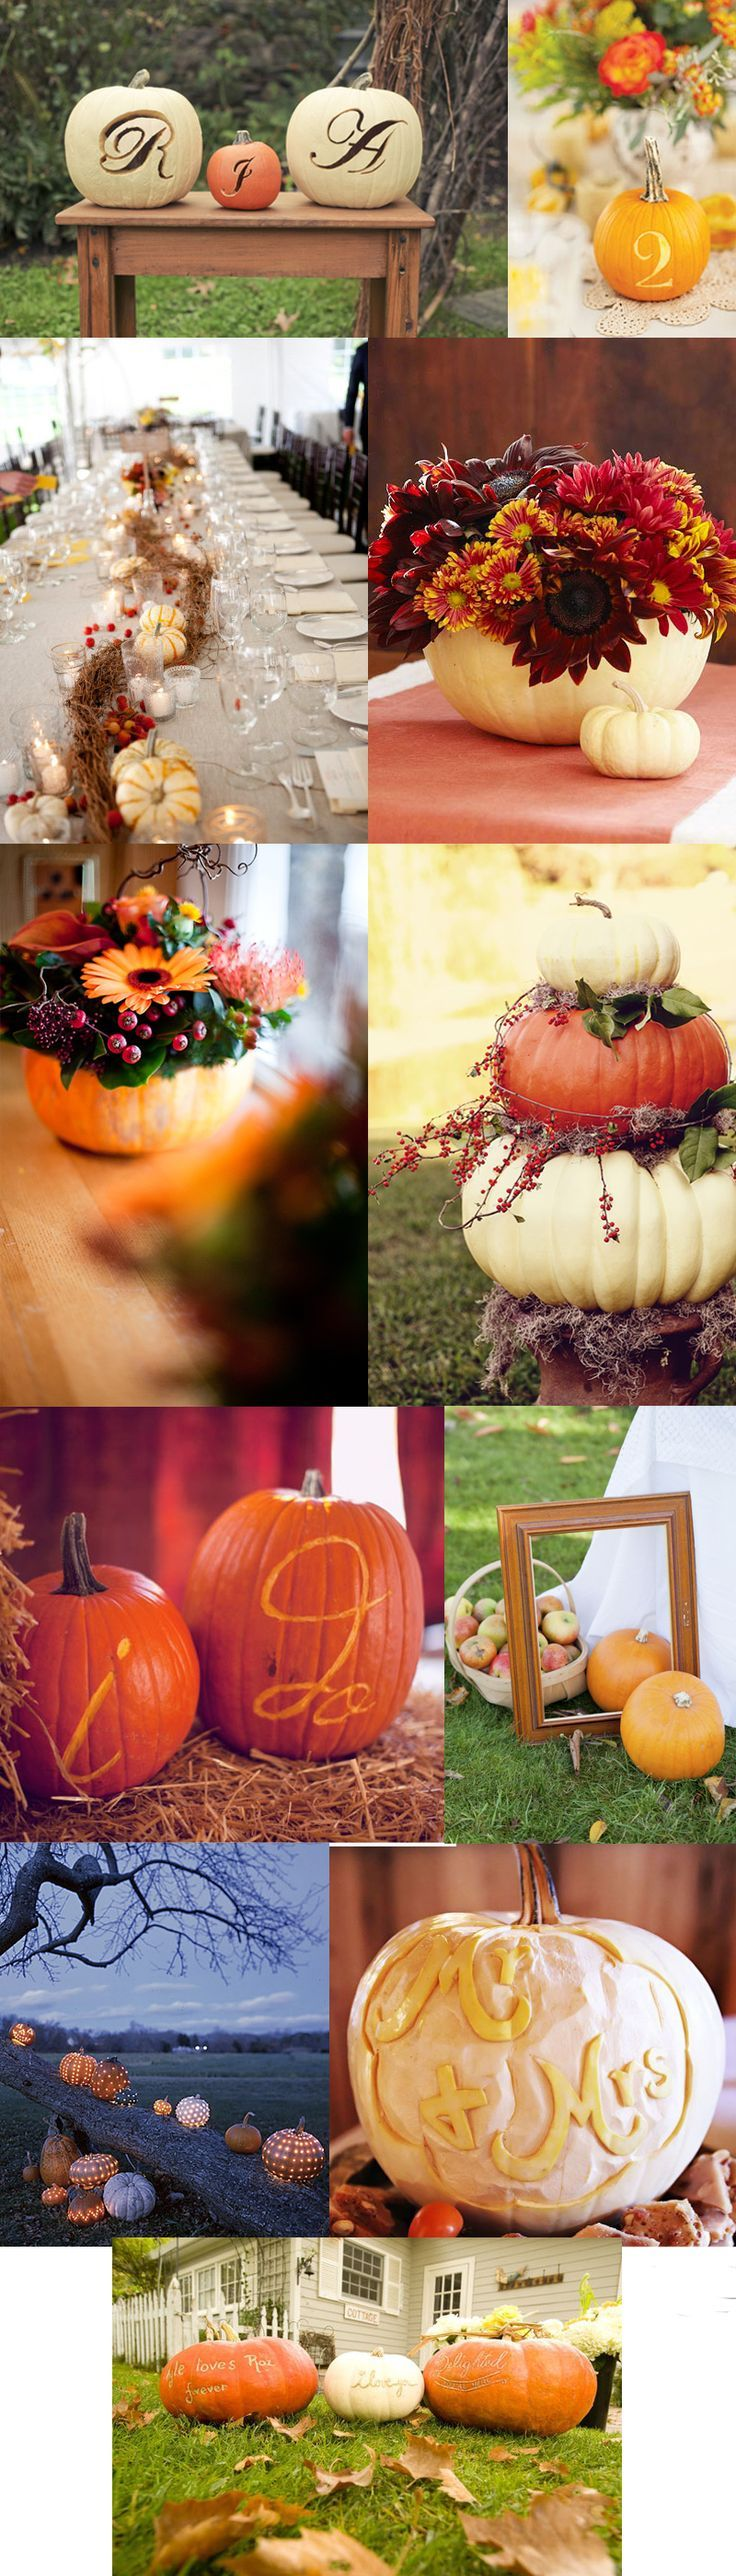 Unique Touches for Your Autumn Wedding - not so much the farm aspect but I love the details elsewhere